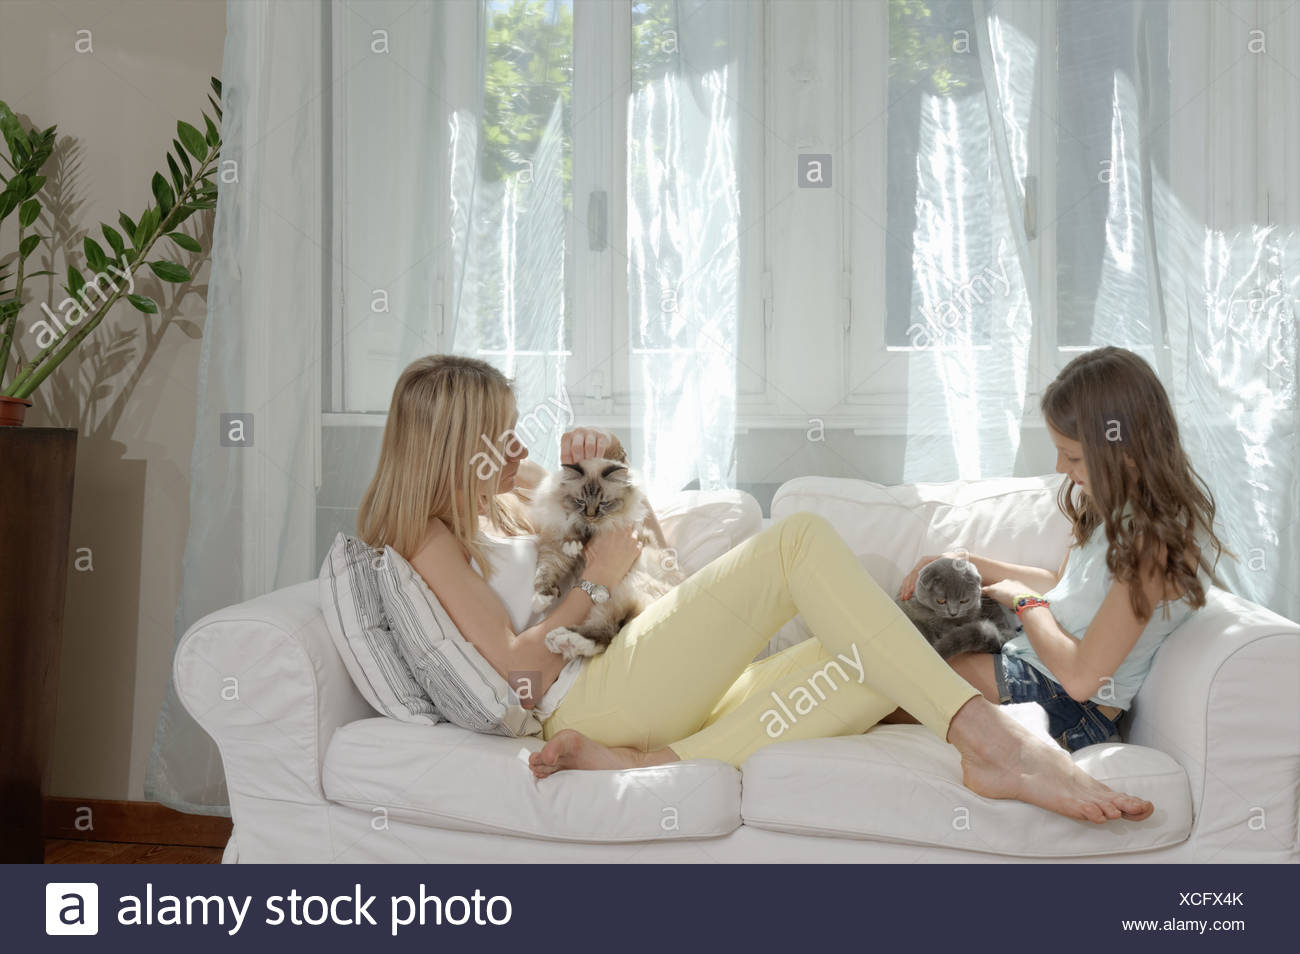 Mother and daughter on sofa petting cats - Stock Image